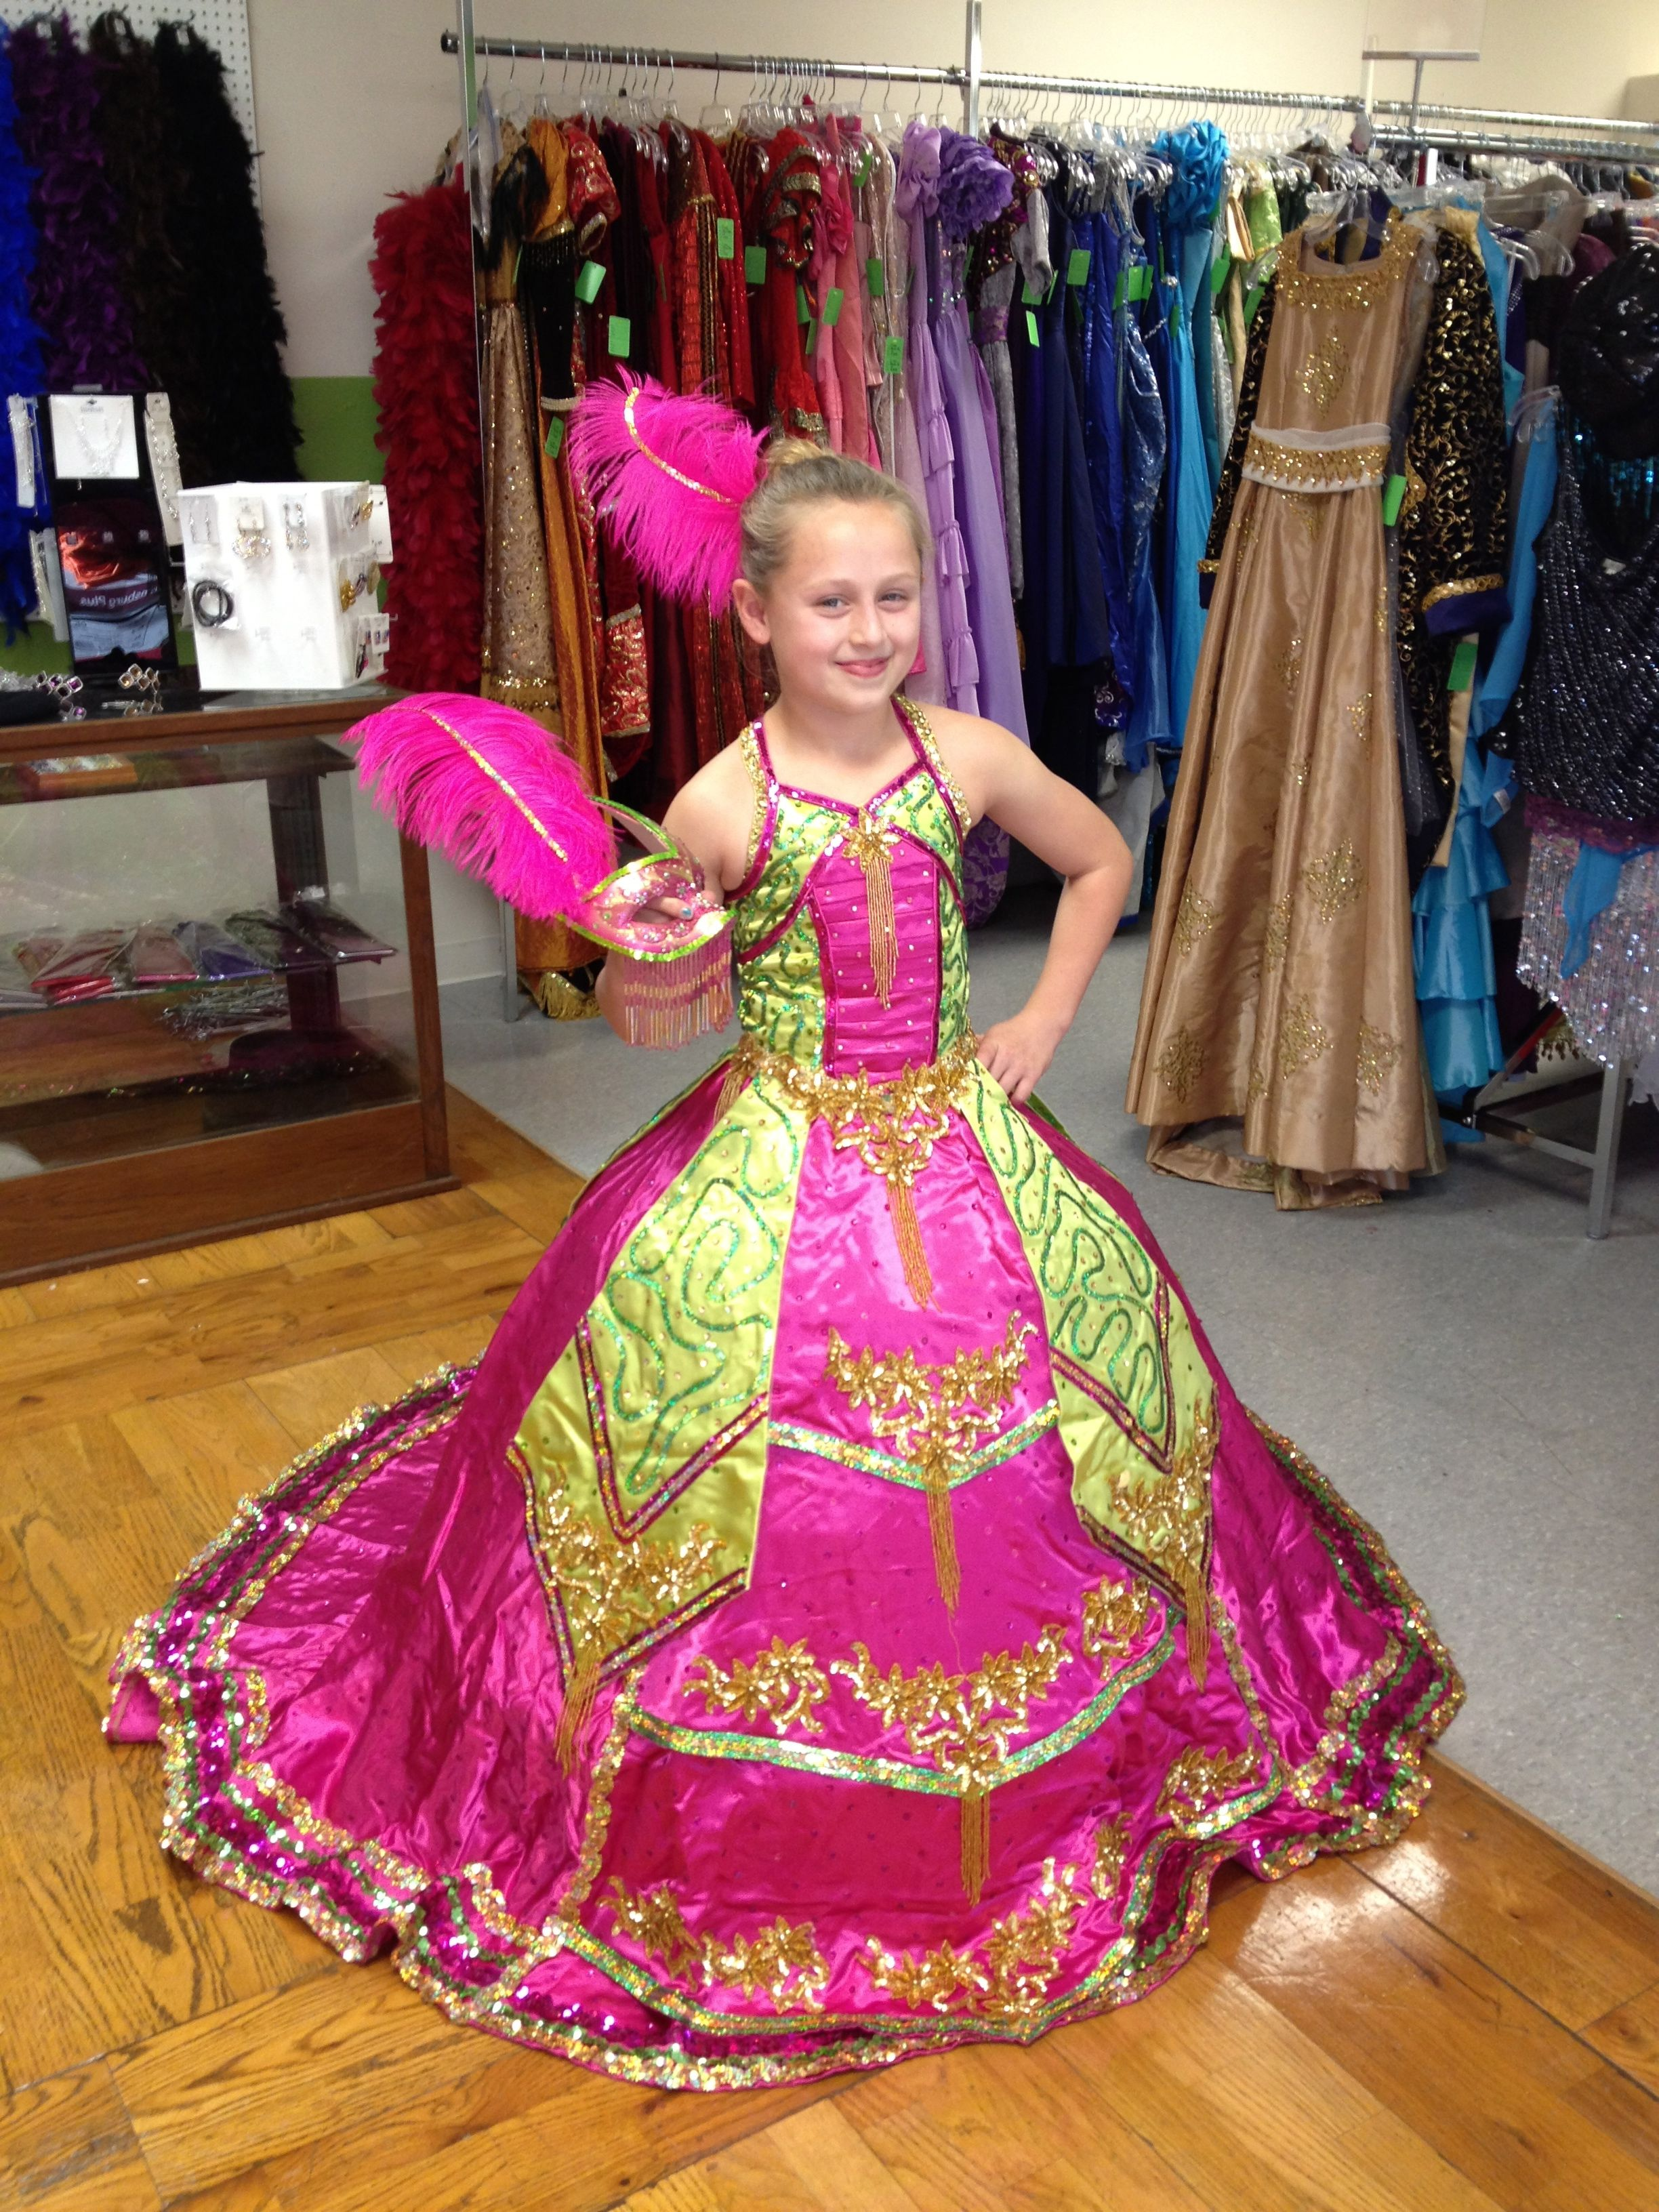 Gorgeous Ball Gown made for a young princess in a Mardi Gras Ball in ...